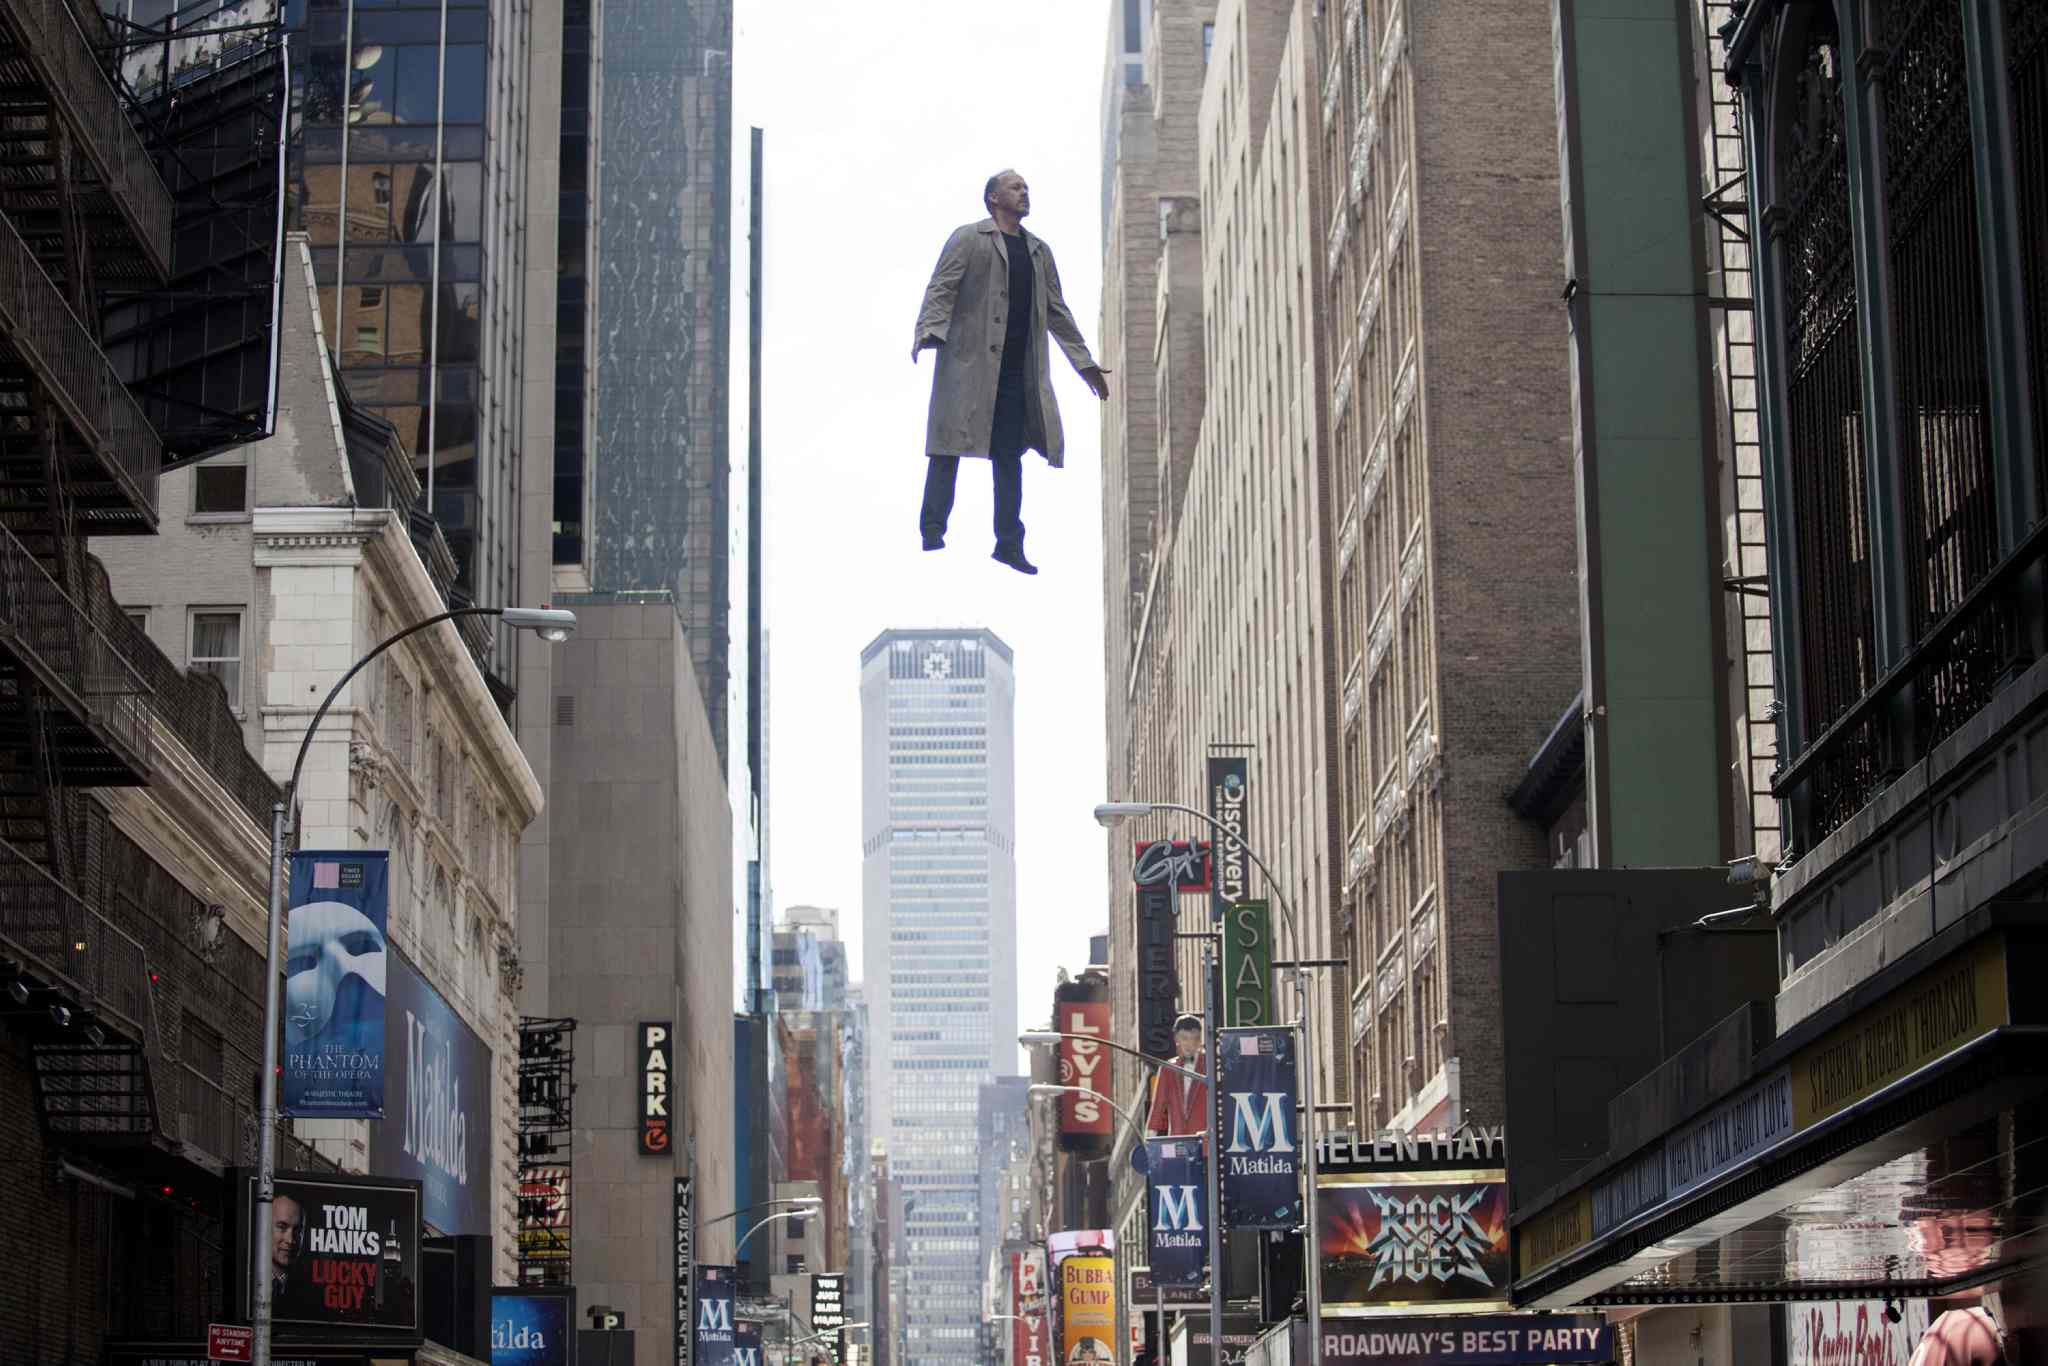 Michael Keaton in Birdman is the early favourite to win Best Actor at the Academy Awards. Care to bet on that?